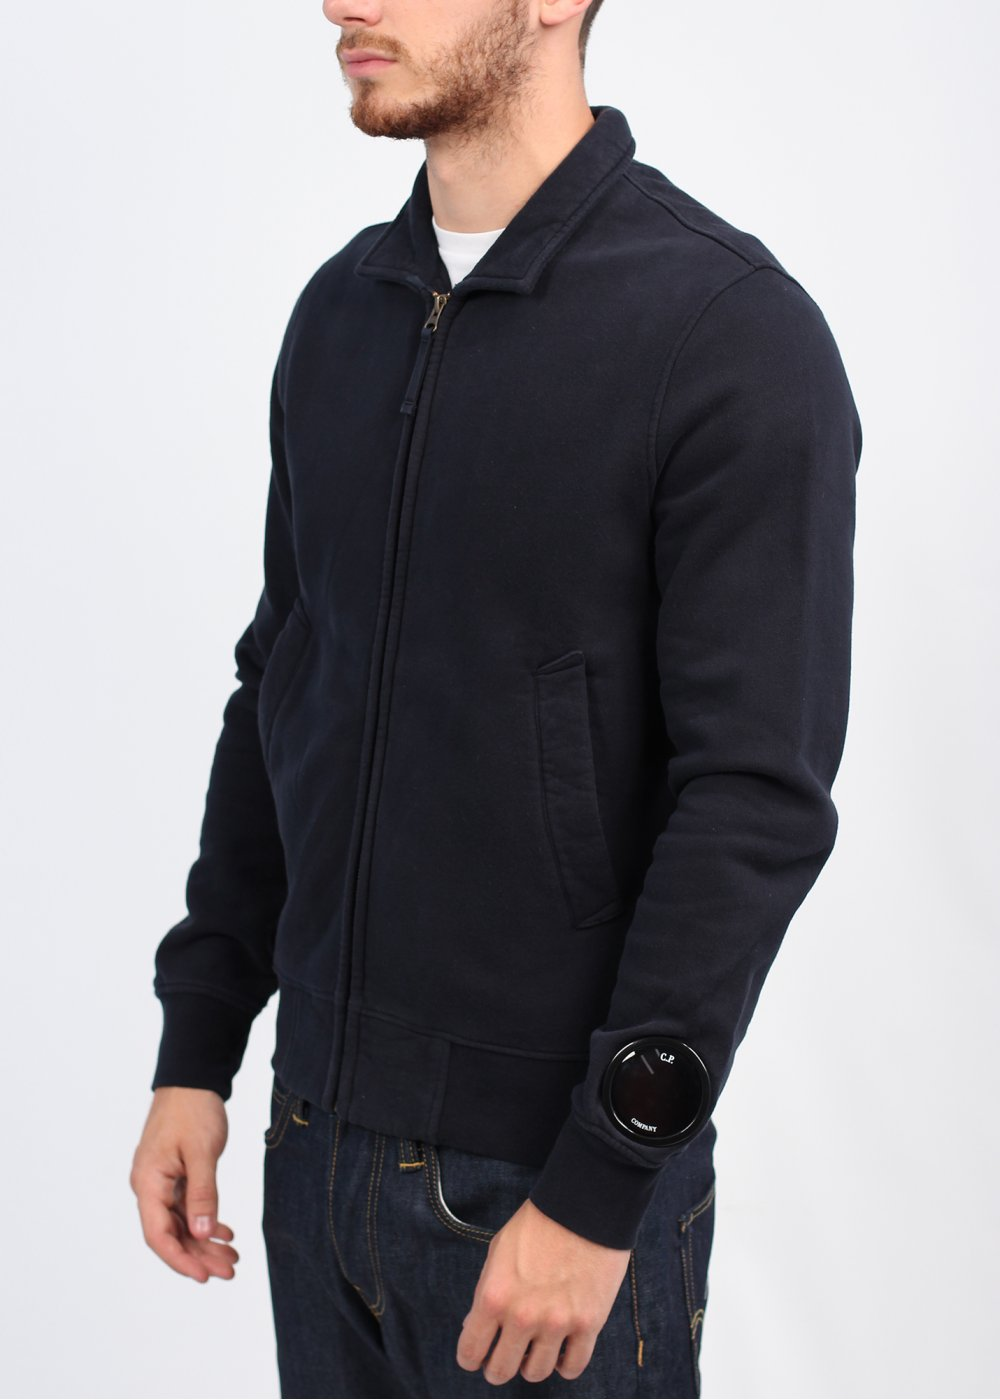 Cp Company Zip Jacket Navy